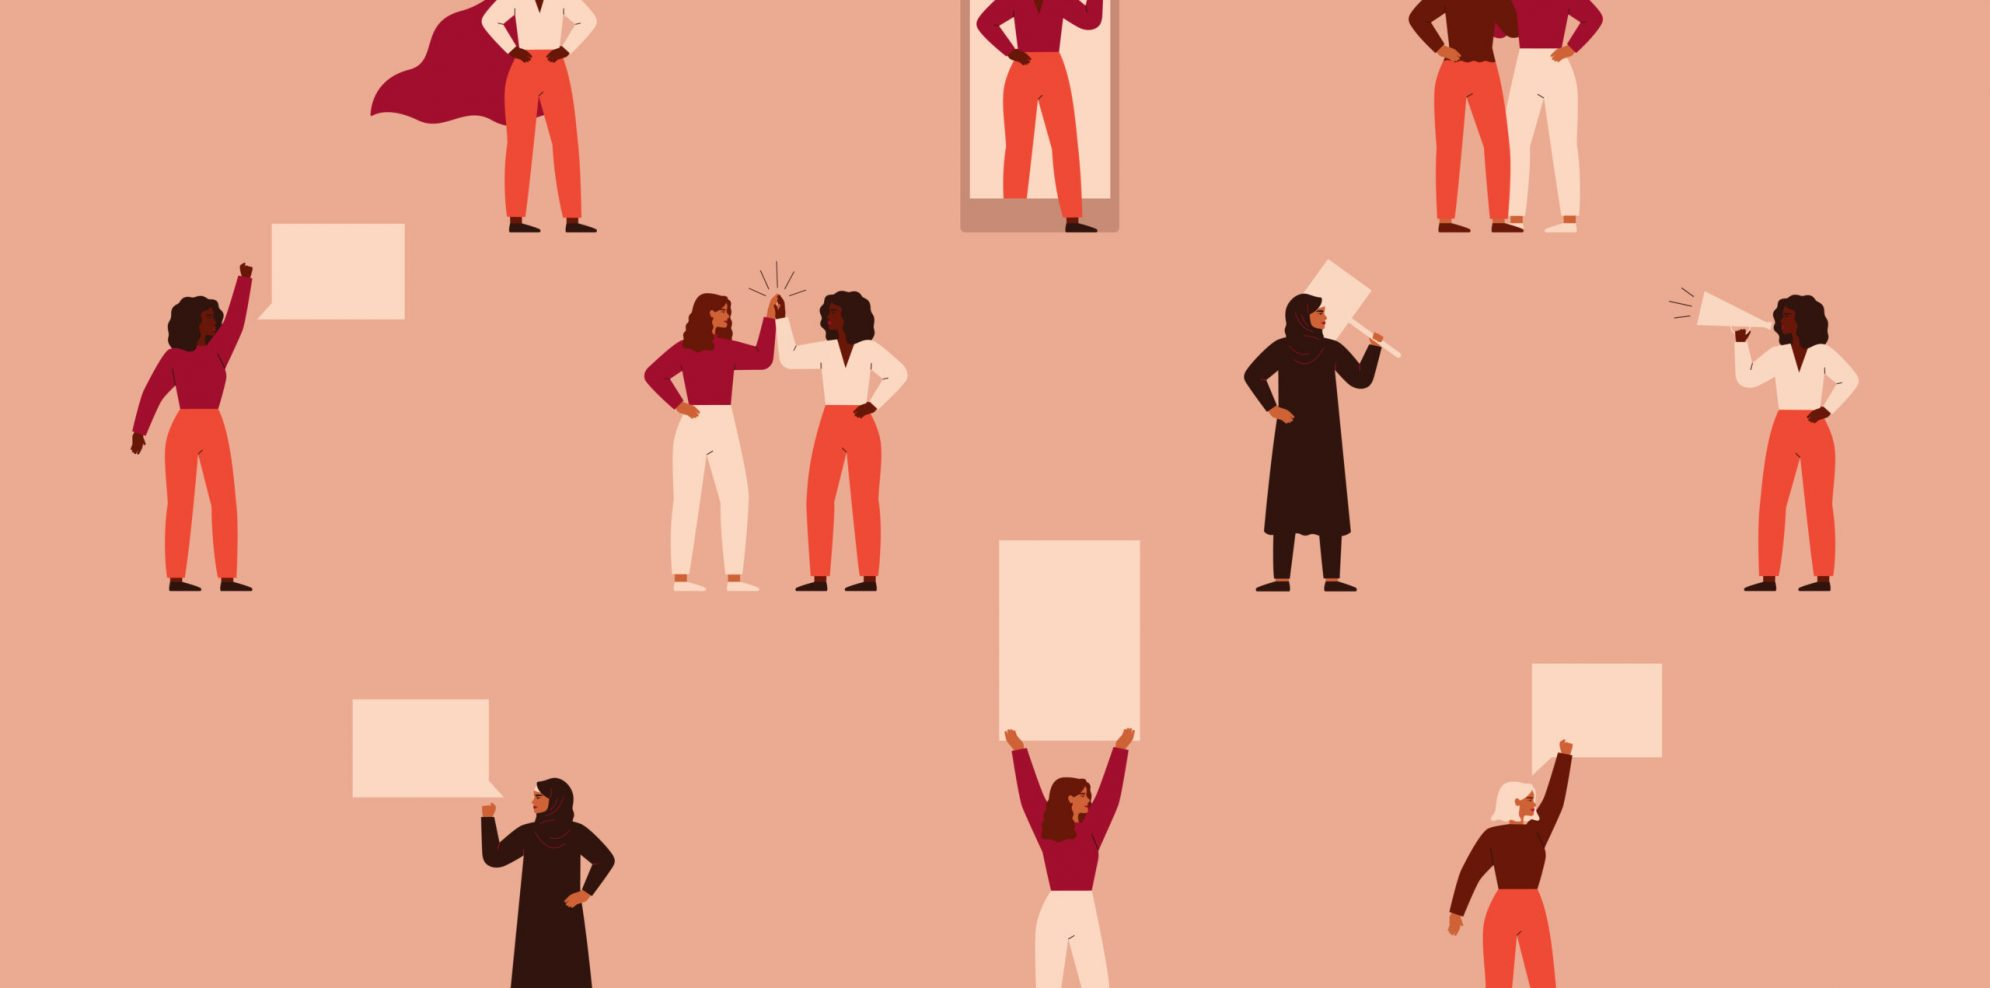 Strong women different nationalities and cultures protest. Concept of political meeting, parade, picketing, or demonstration, female's empowerment movement. Vector illustration in flat cartoon style.